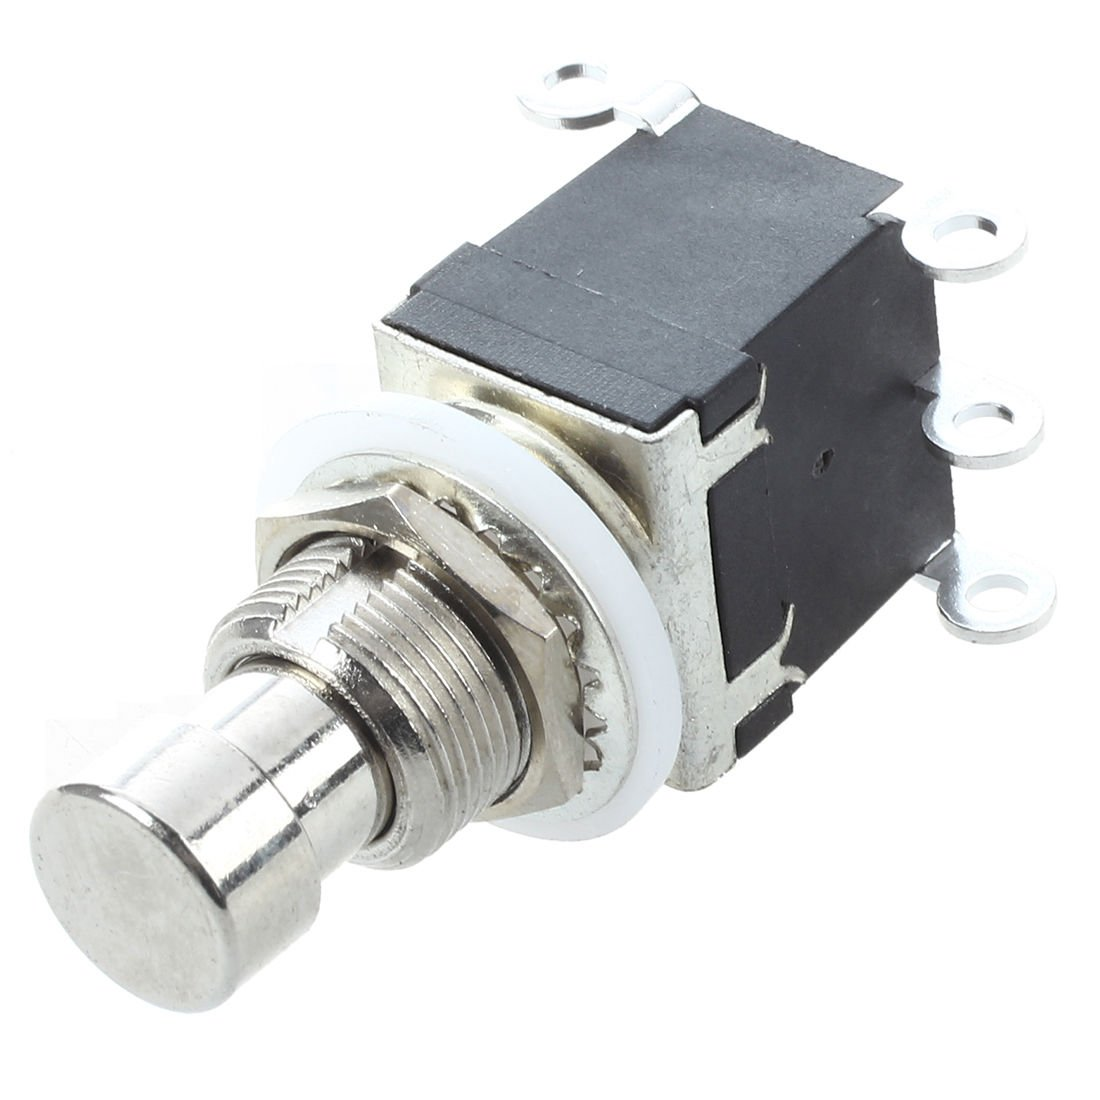 SODIAL(R) 6Pins DPDT Momentary Stomp Foot Switch for Guitar AC 250V/2A 125V/4A